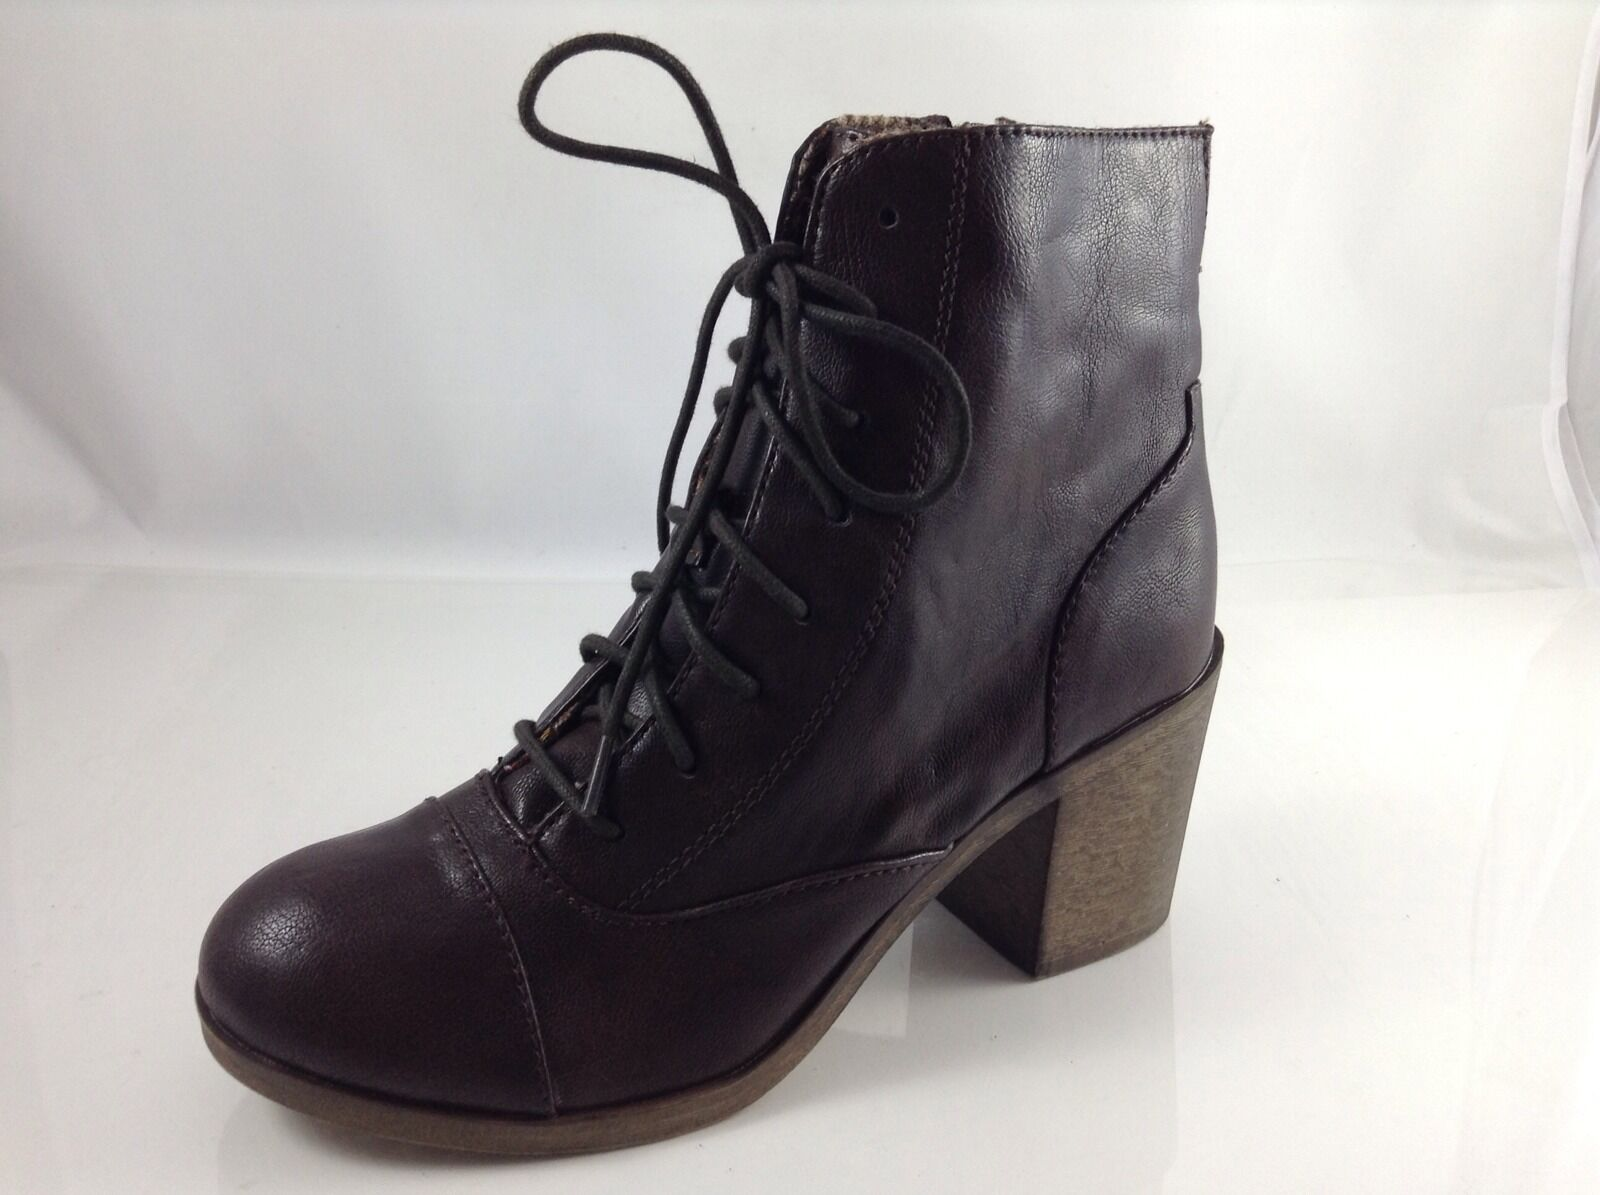 Rock & Candy Womens Dark Brown Ankle Boots 8.5 M